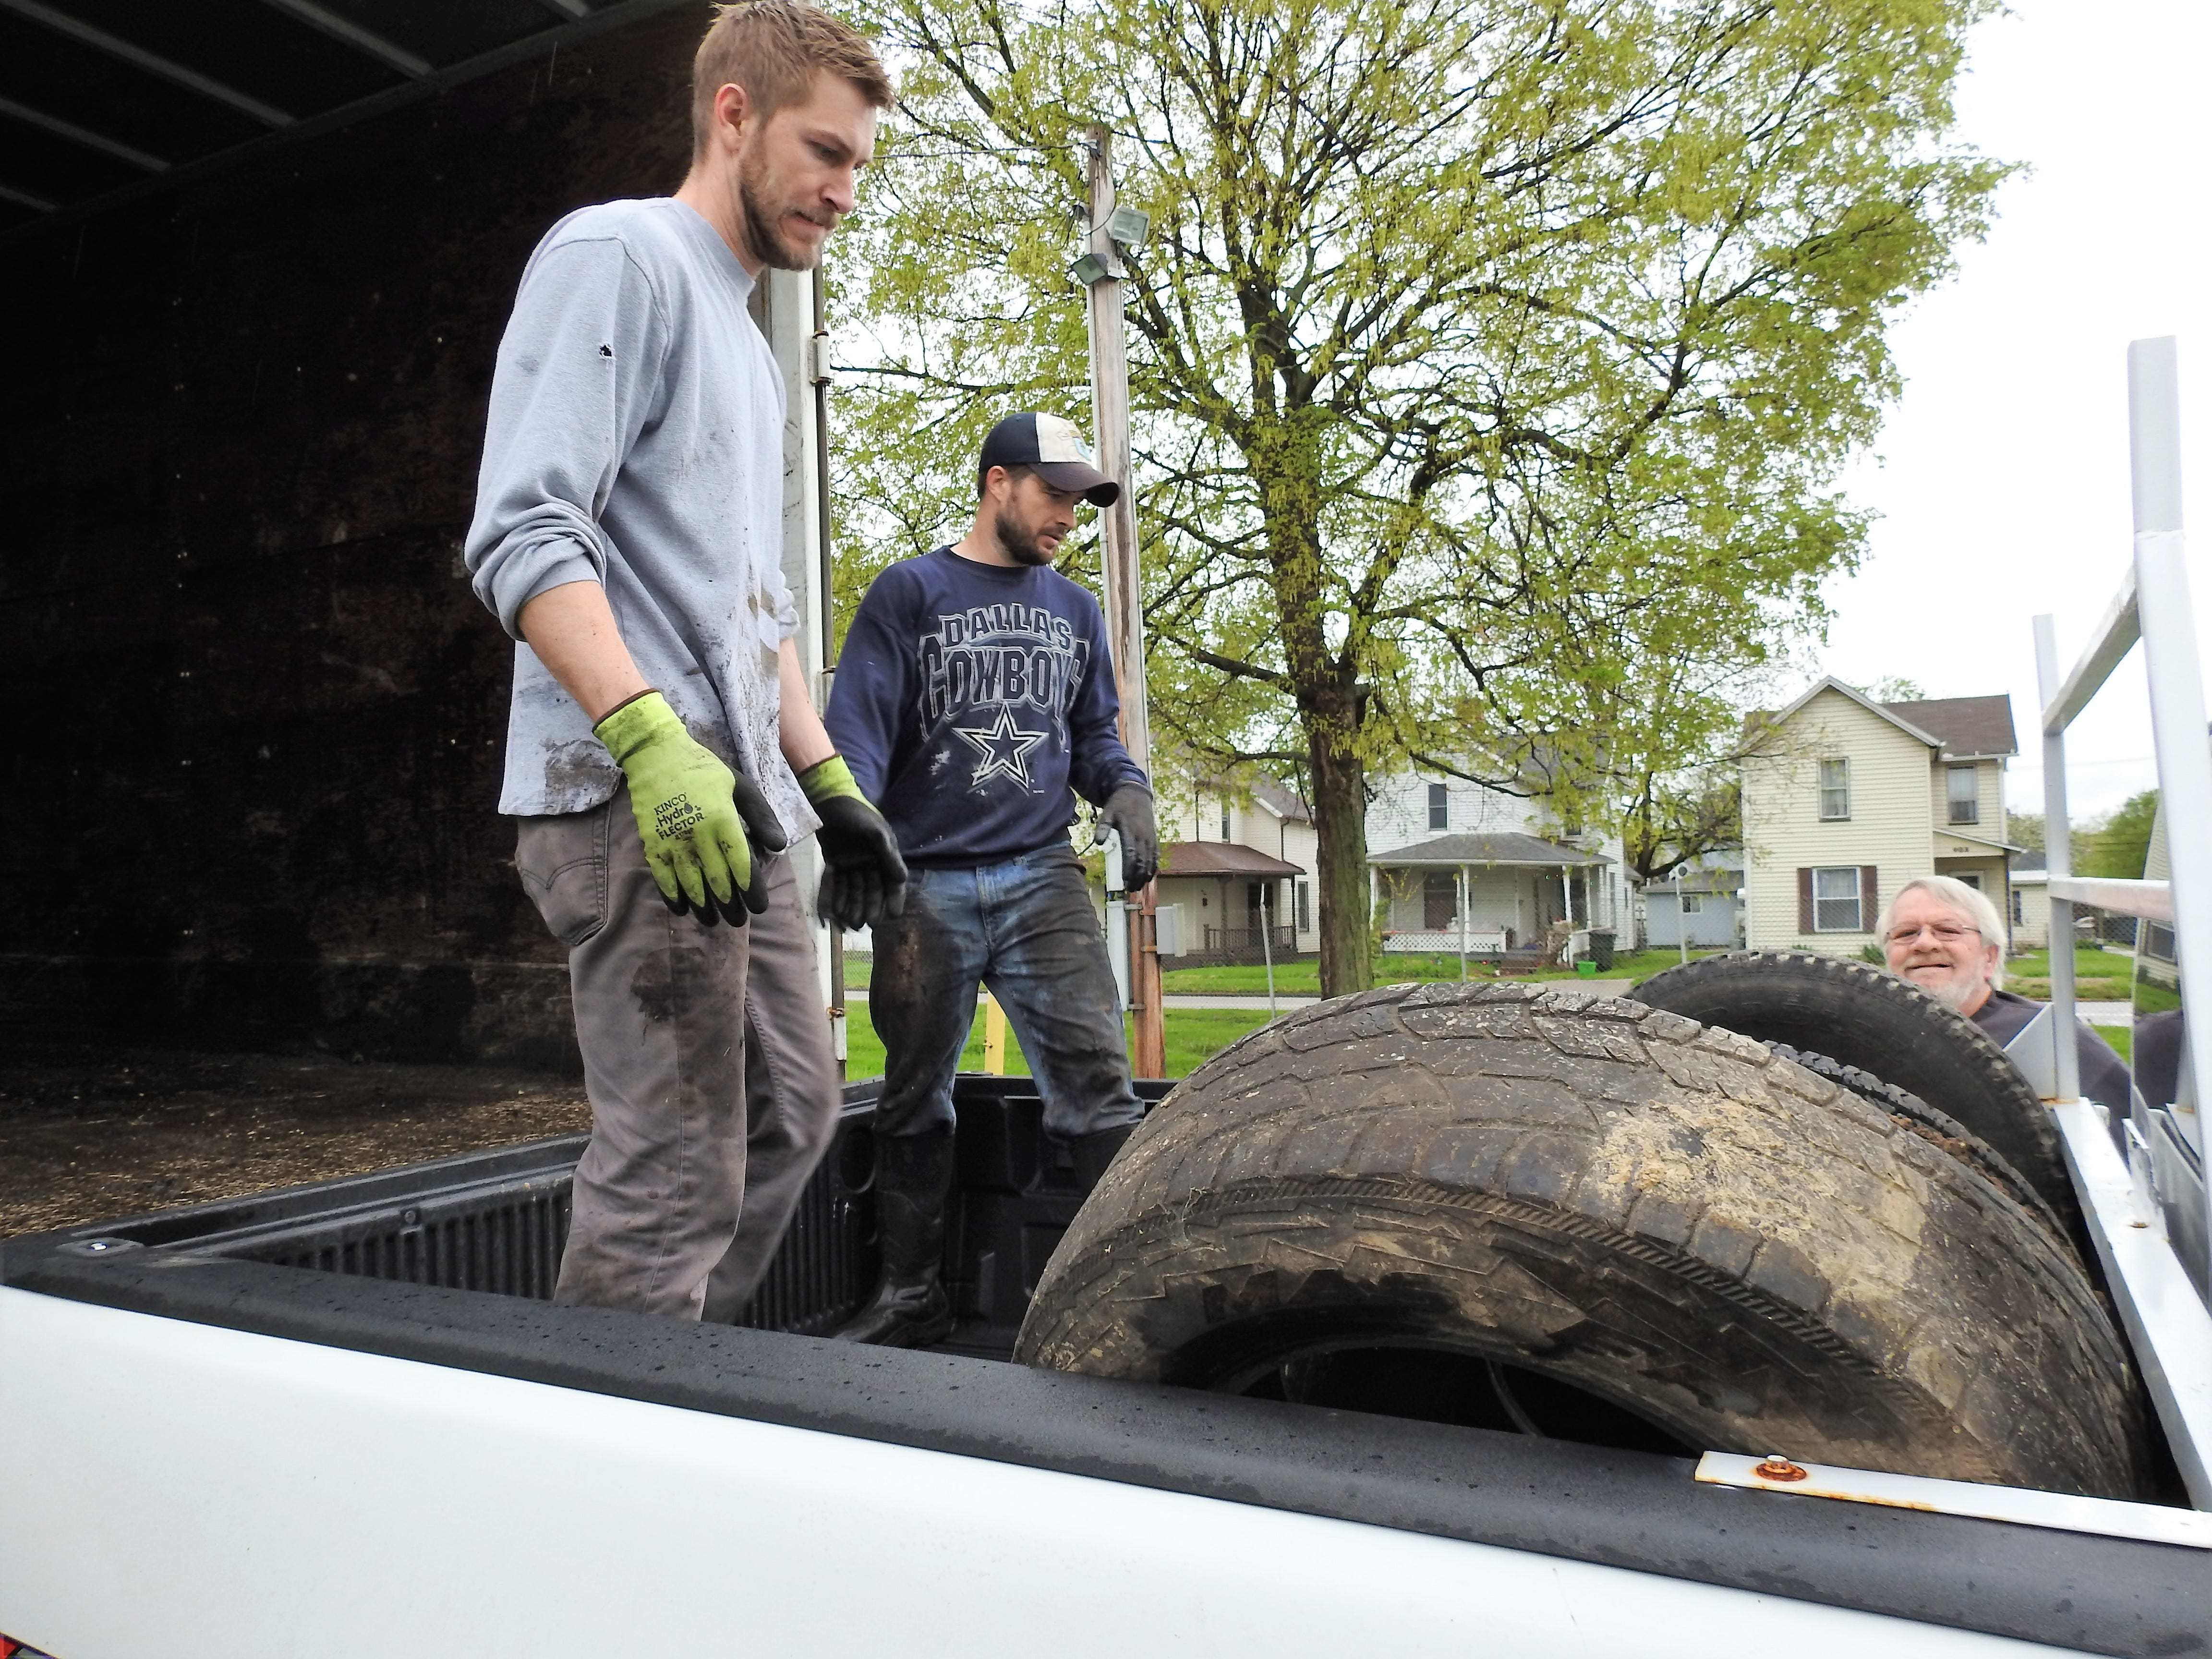 More than 1,000 tires taken in scrap collection